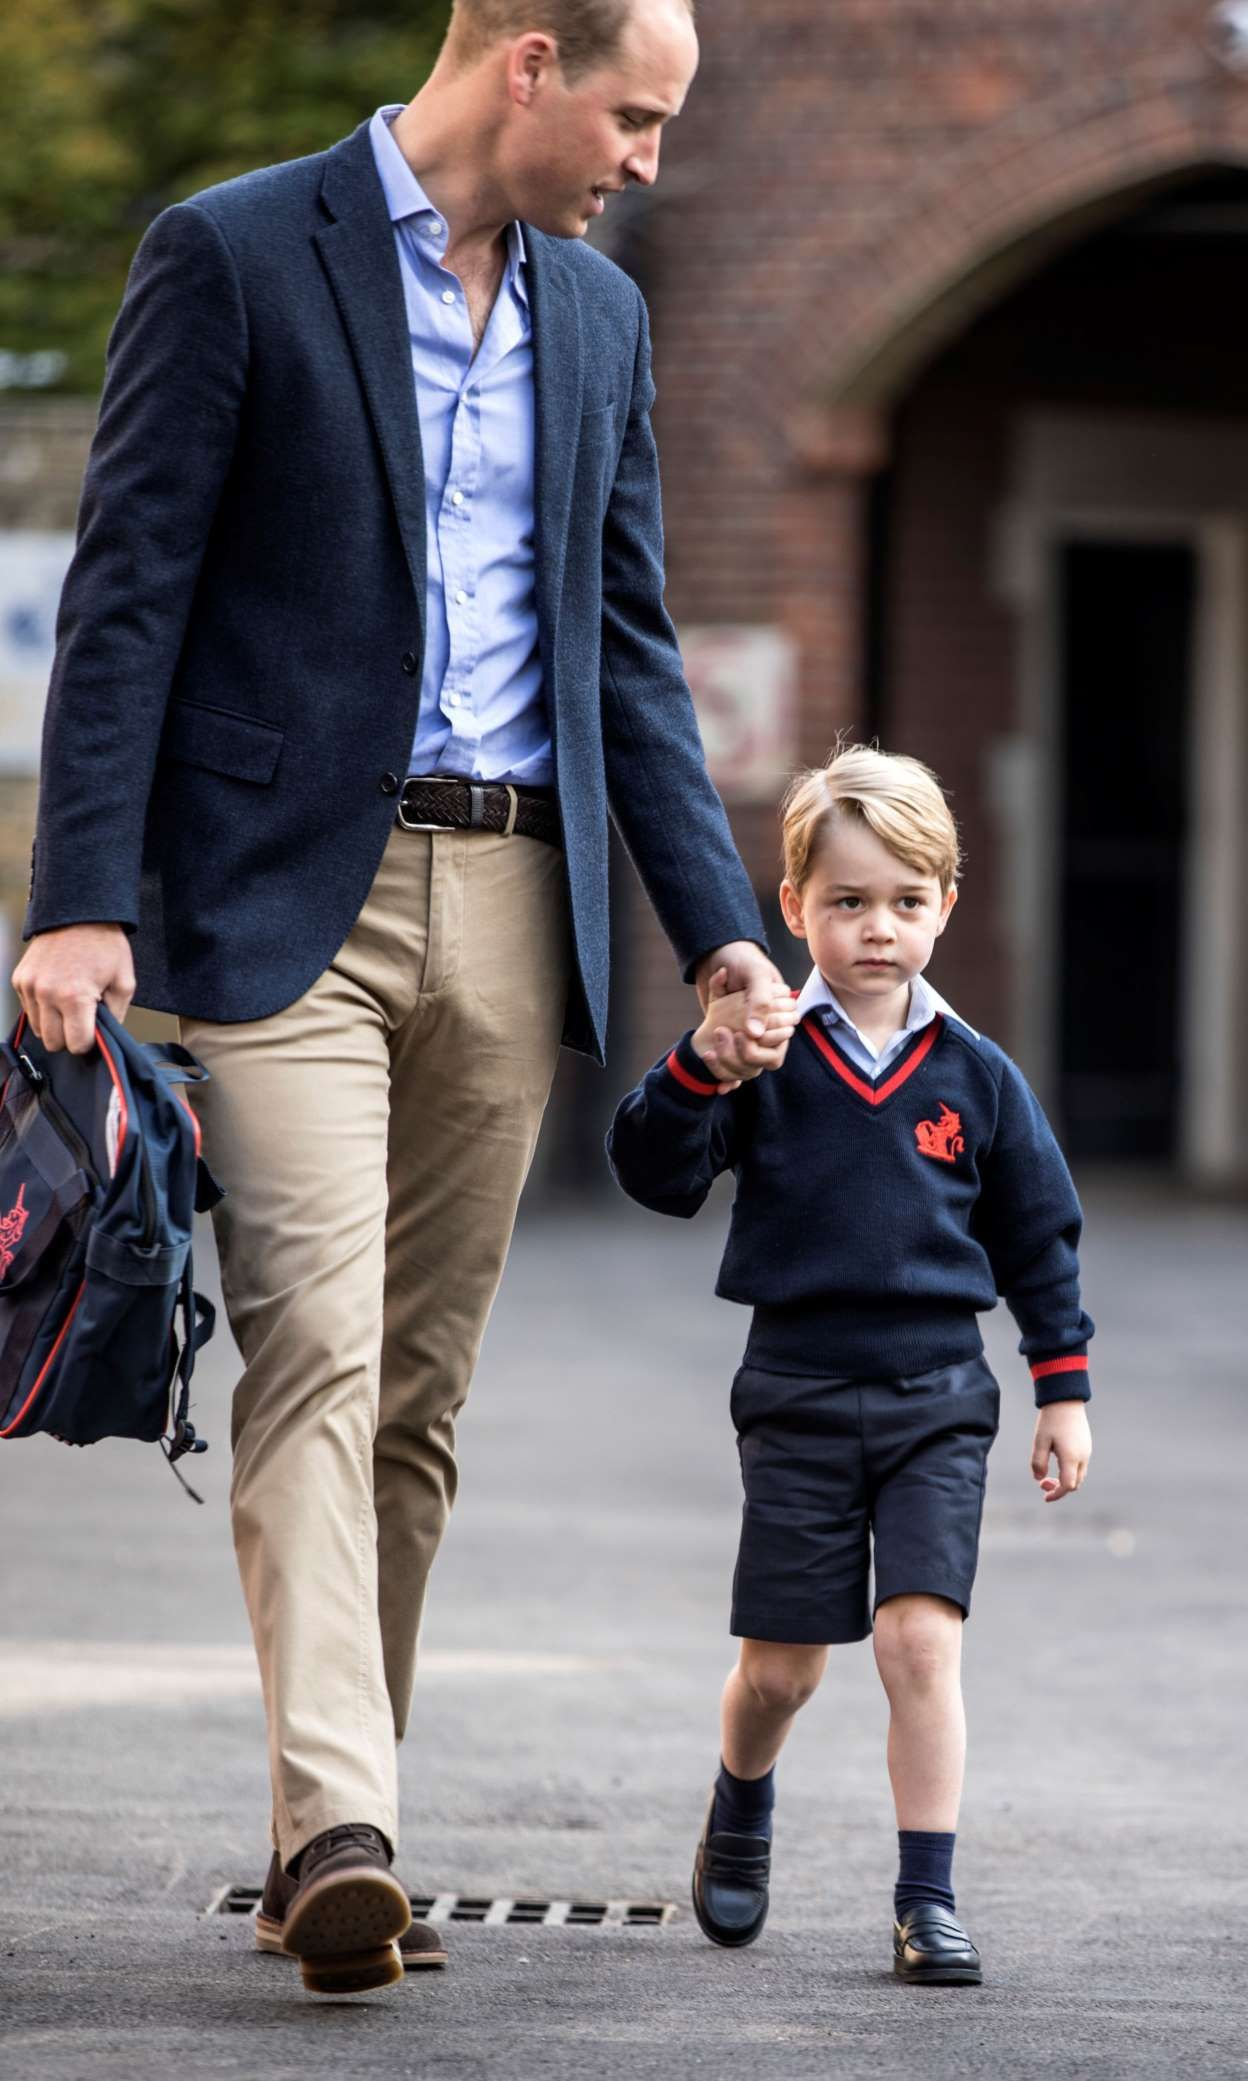 a558f50599d4d Britain's Prince William accompanies his son Prince George on his first day  of school at Thomas's school in Battersea, London, September 7, 2017.